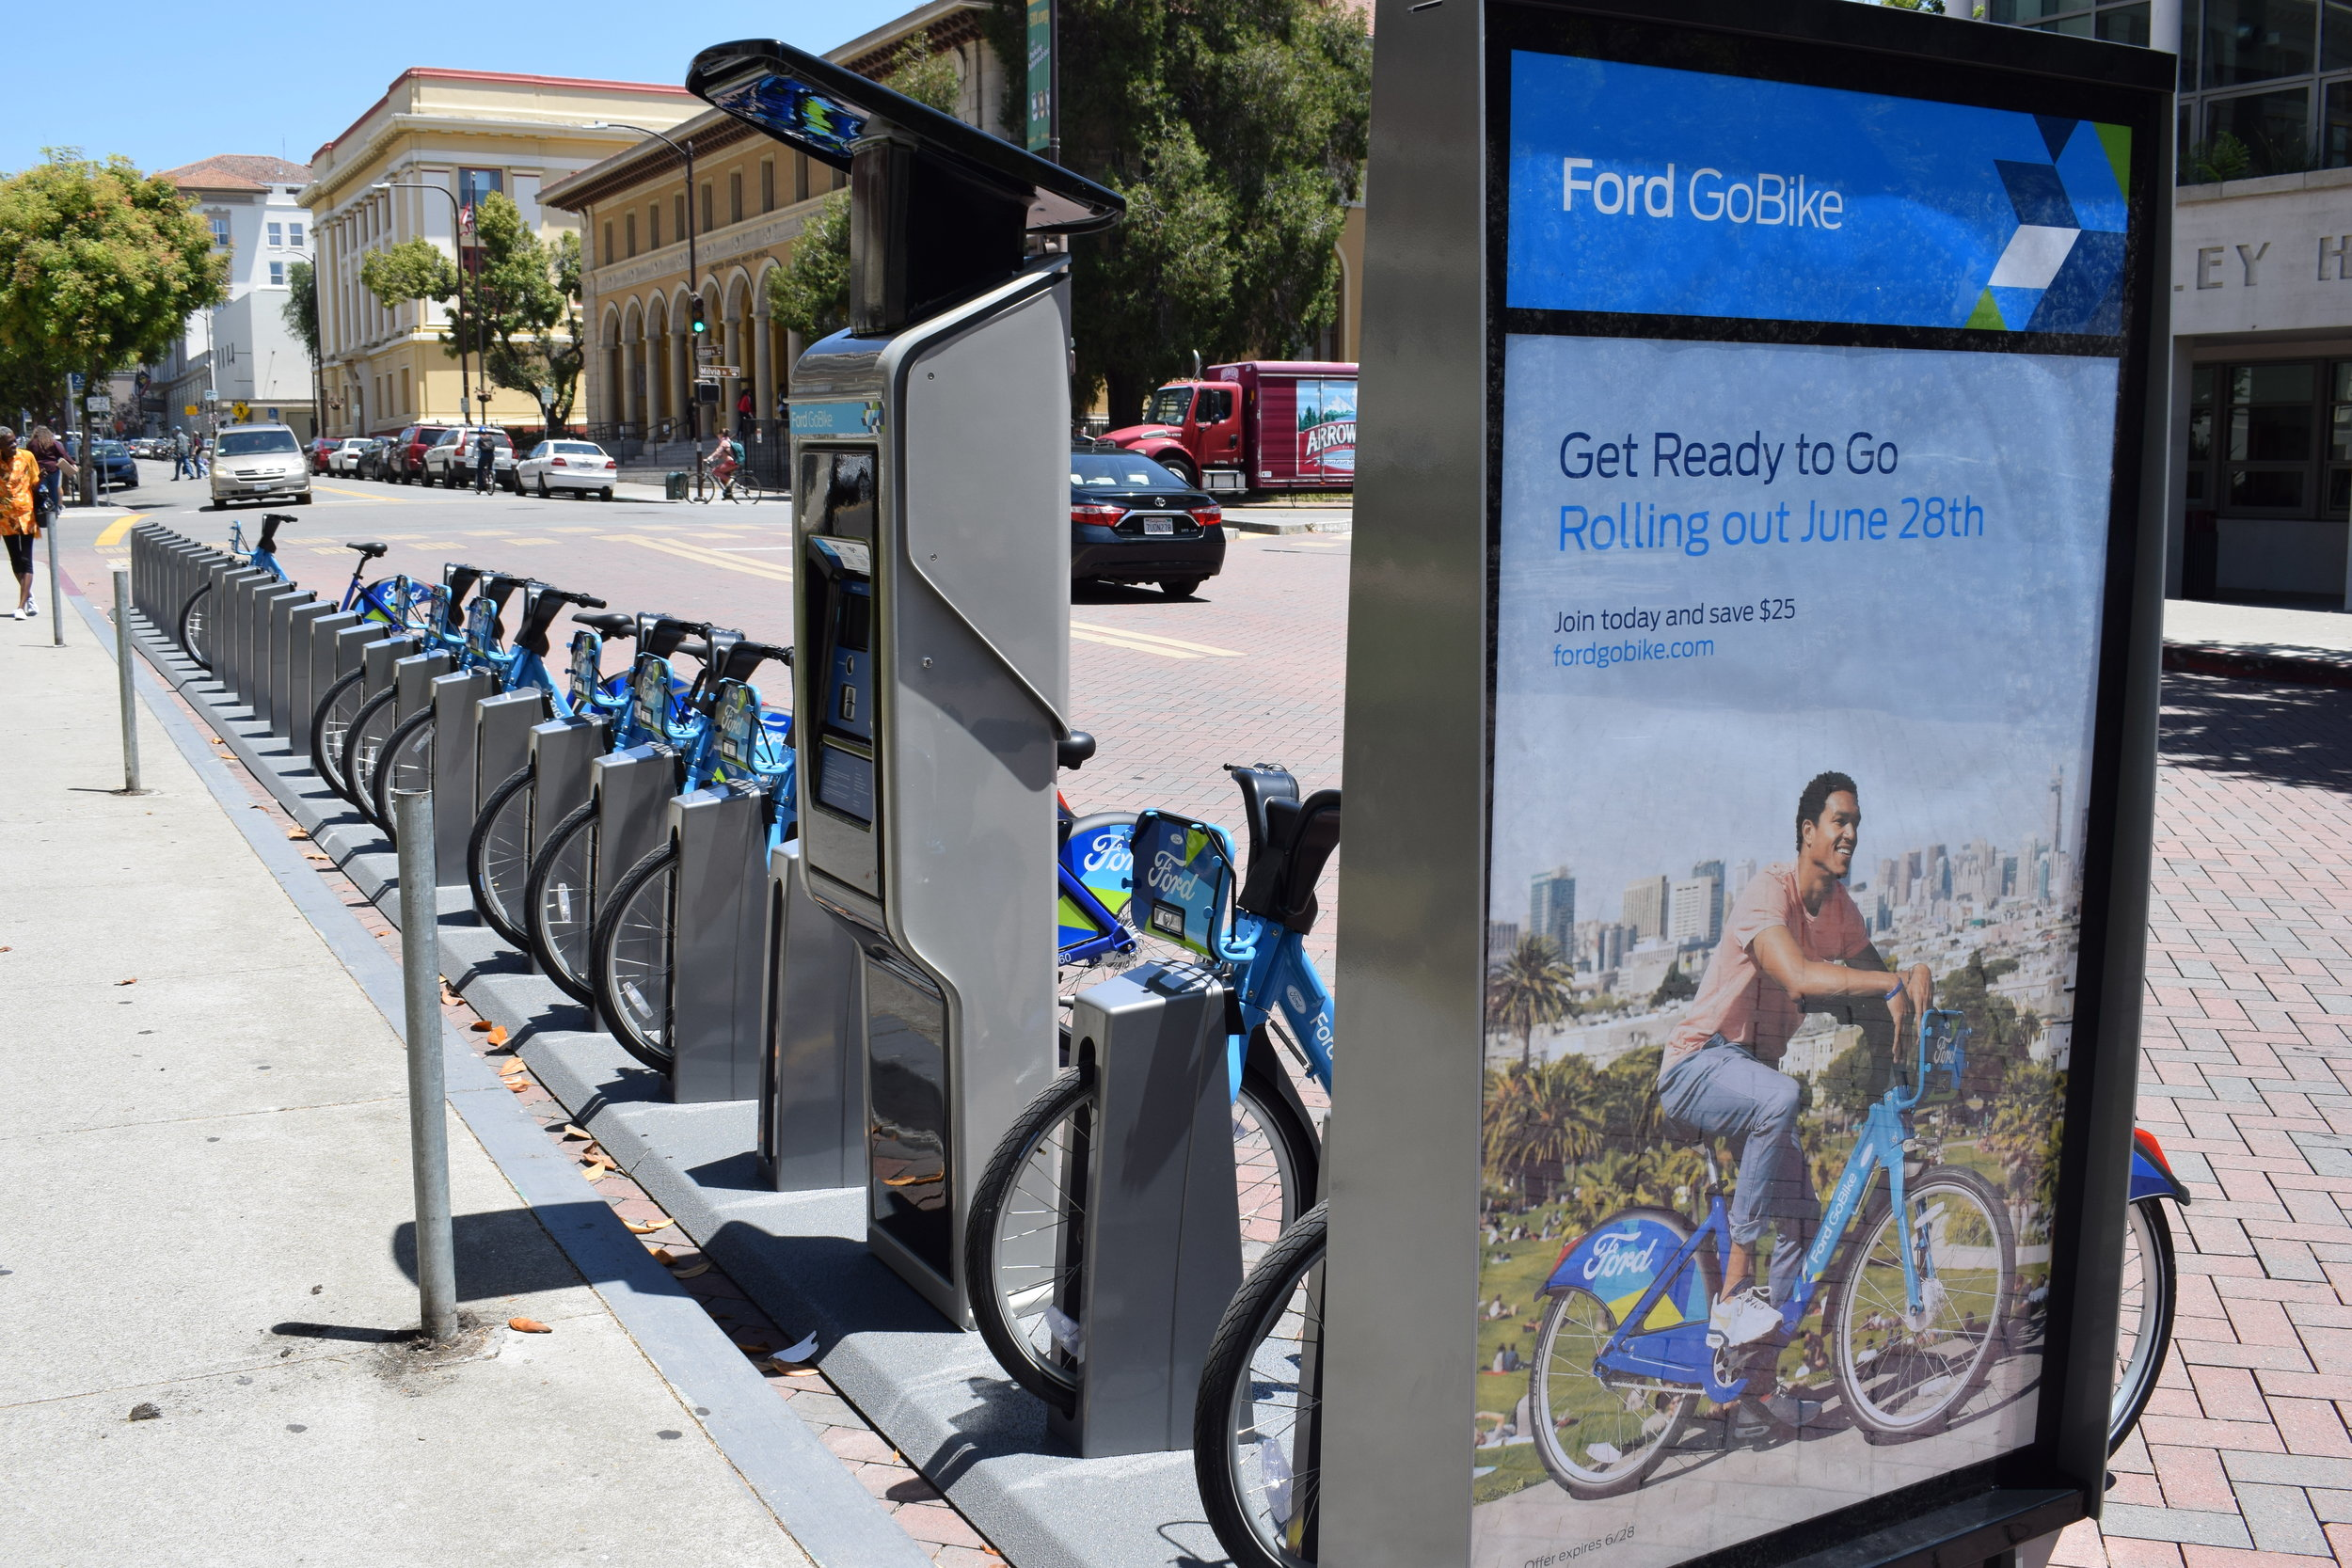 In 2018, Berkeley joined a 7,000 bike regional bike share network including Oakland, Emeryville, San Francisco and San Jose. The Bay Area's network is one of the largest and densest bike share systems in North America.